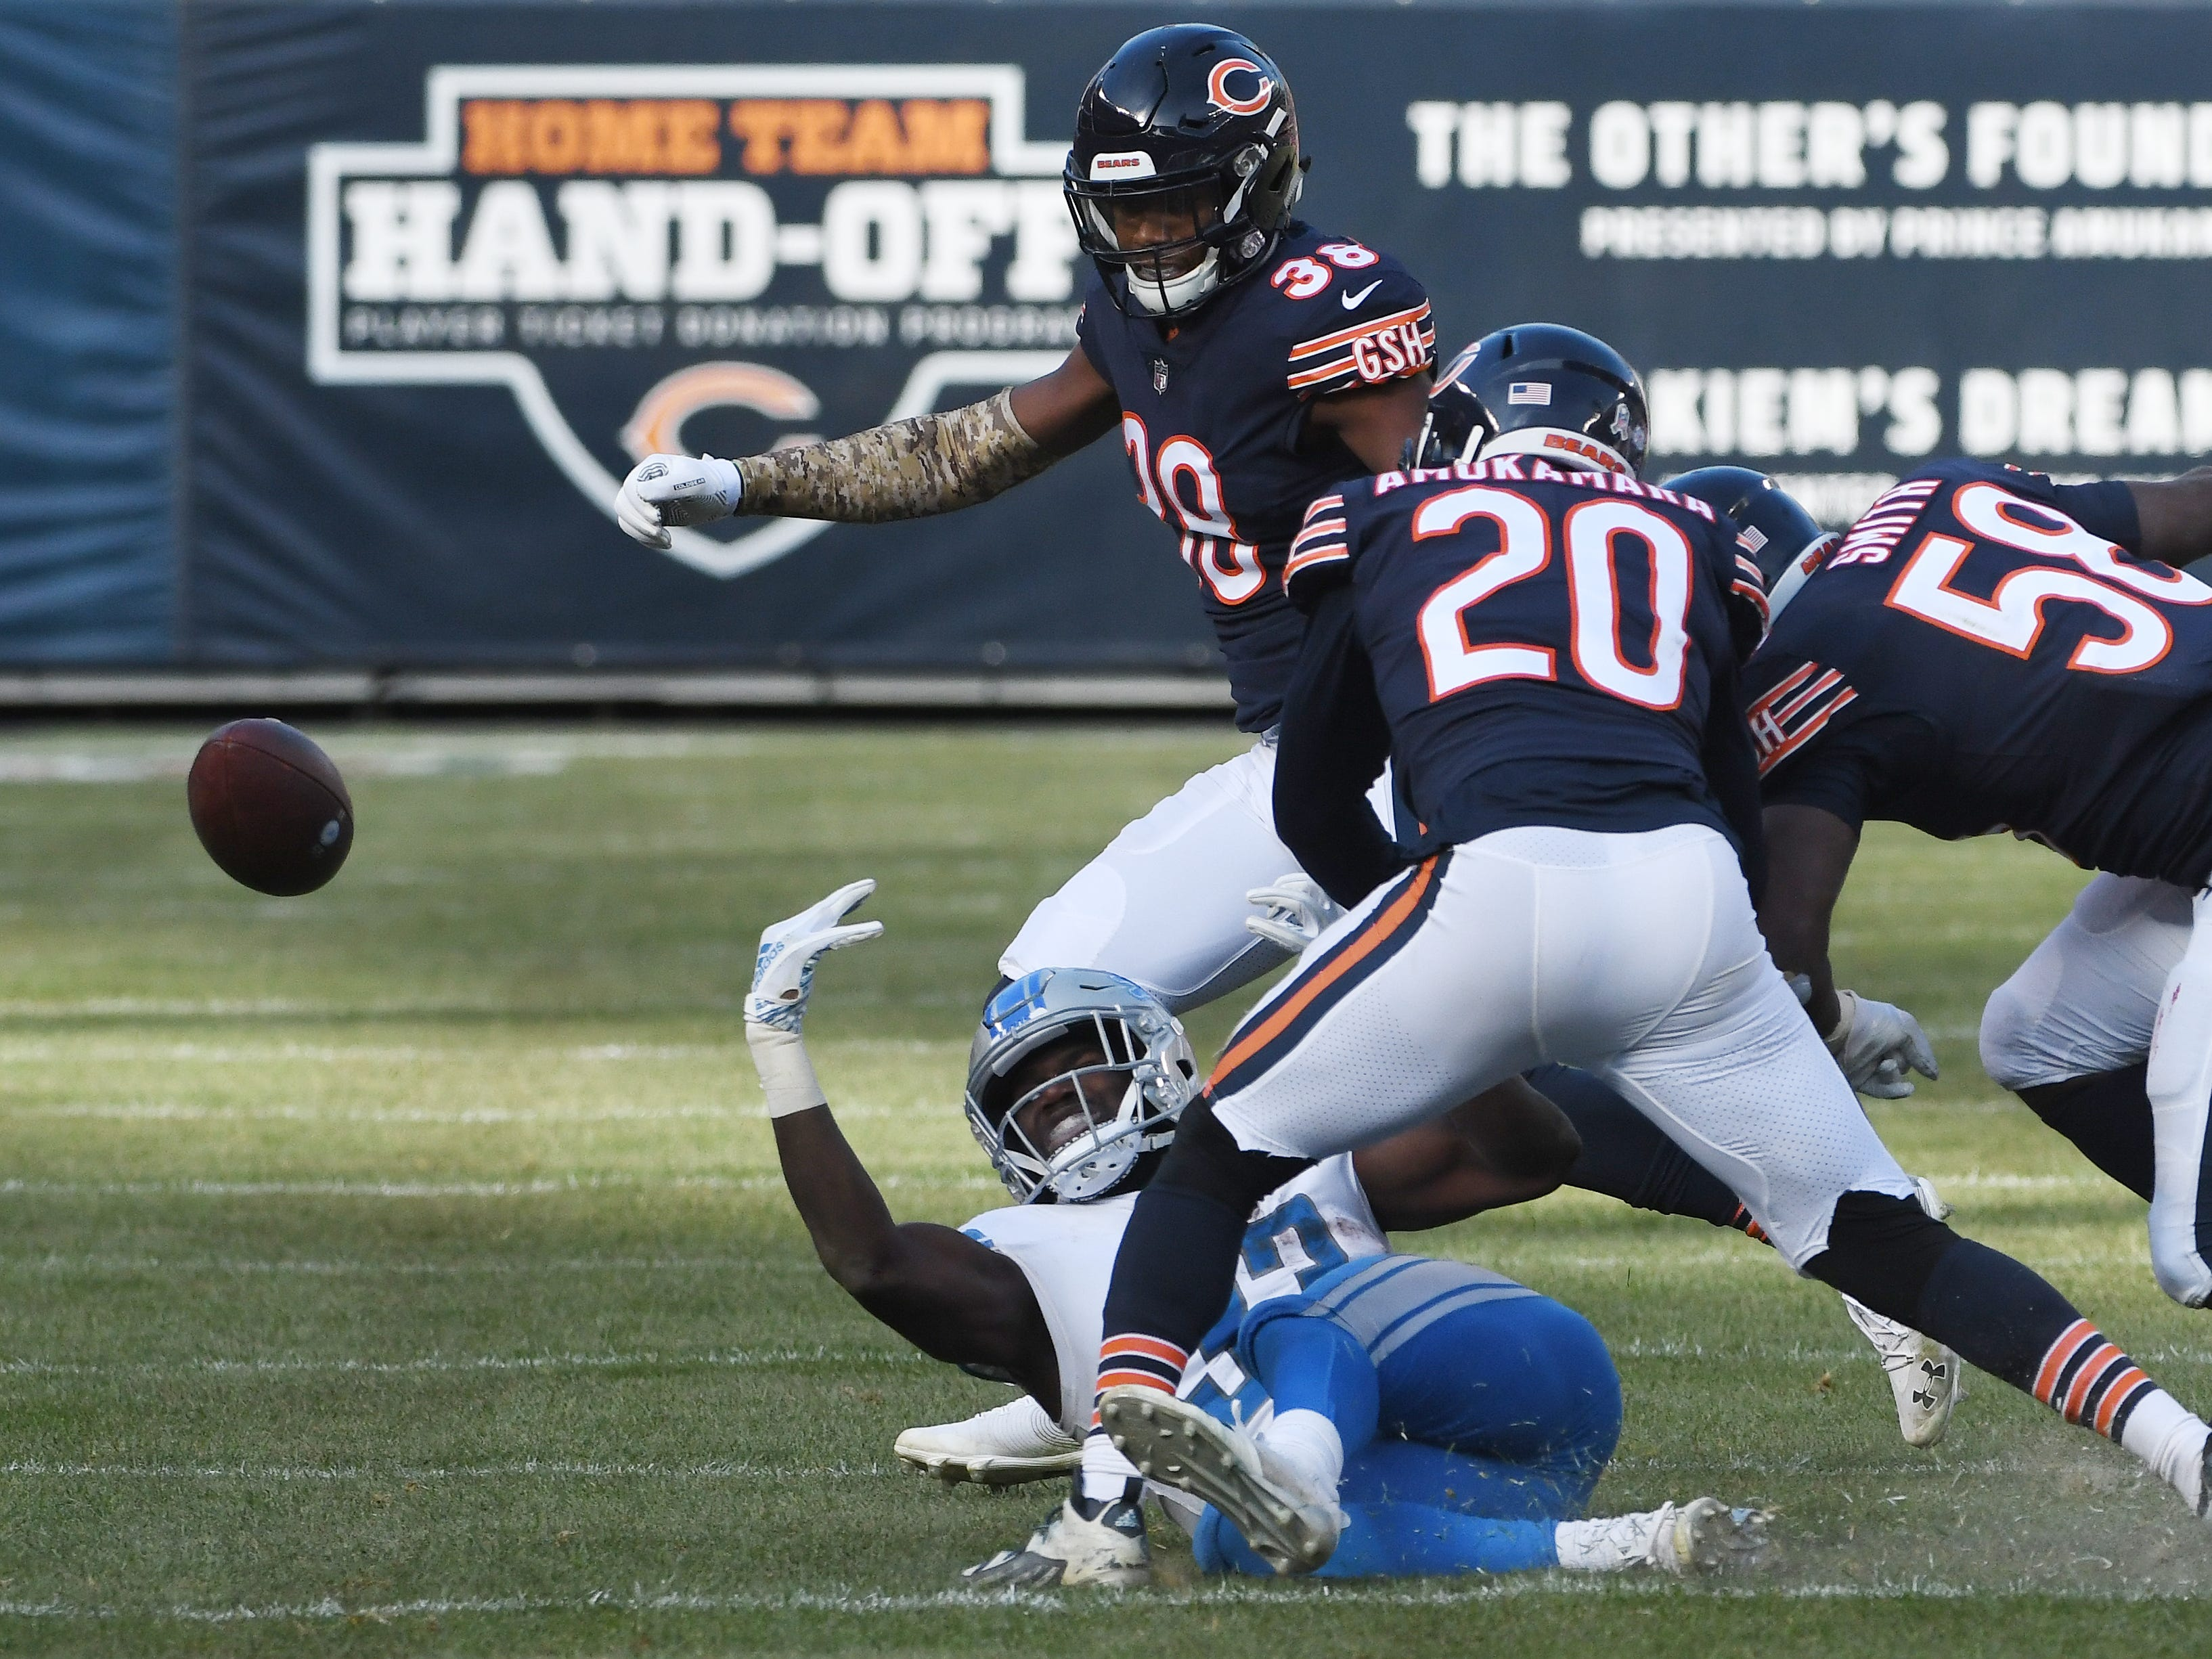 Lions running back Kerryon Johnson loses the ball when hit by Bears' Prince Amukamara, with Chicago's Adrian Amos Jr. recovering, in the third quarter.